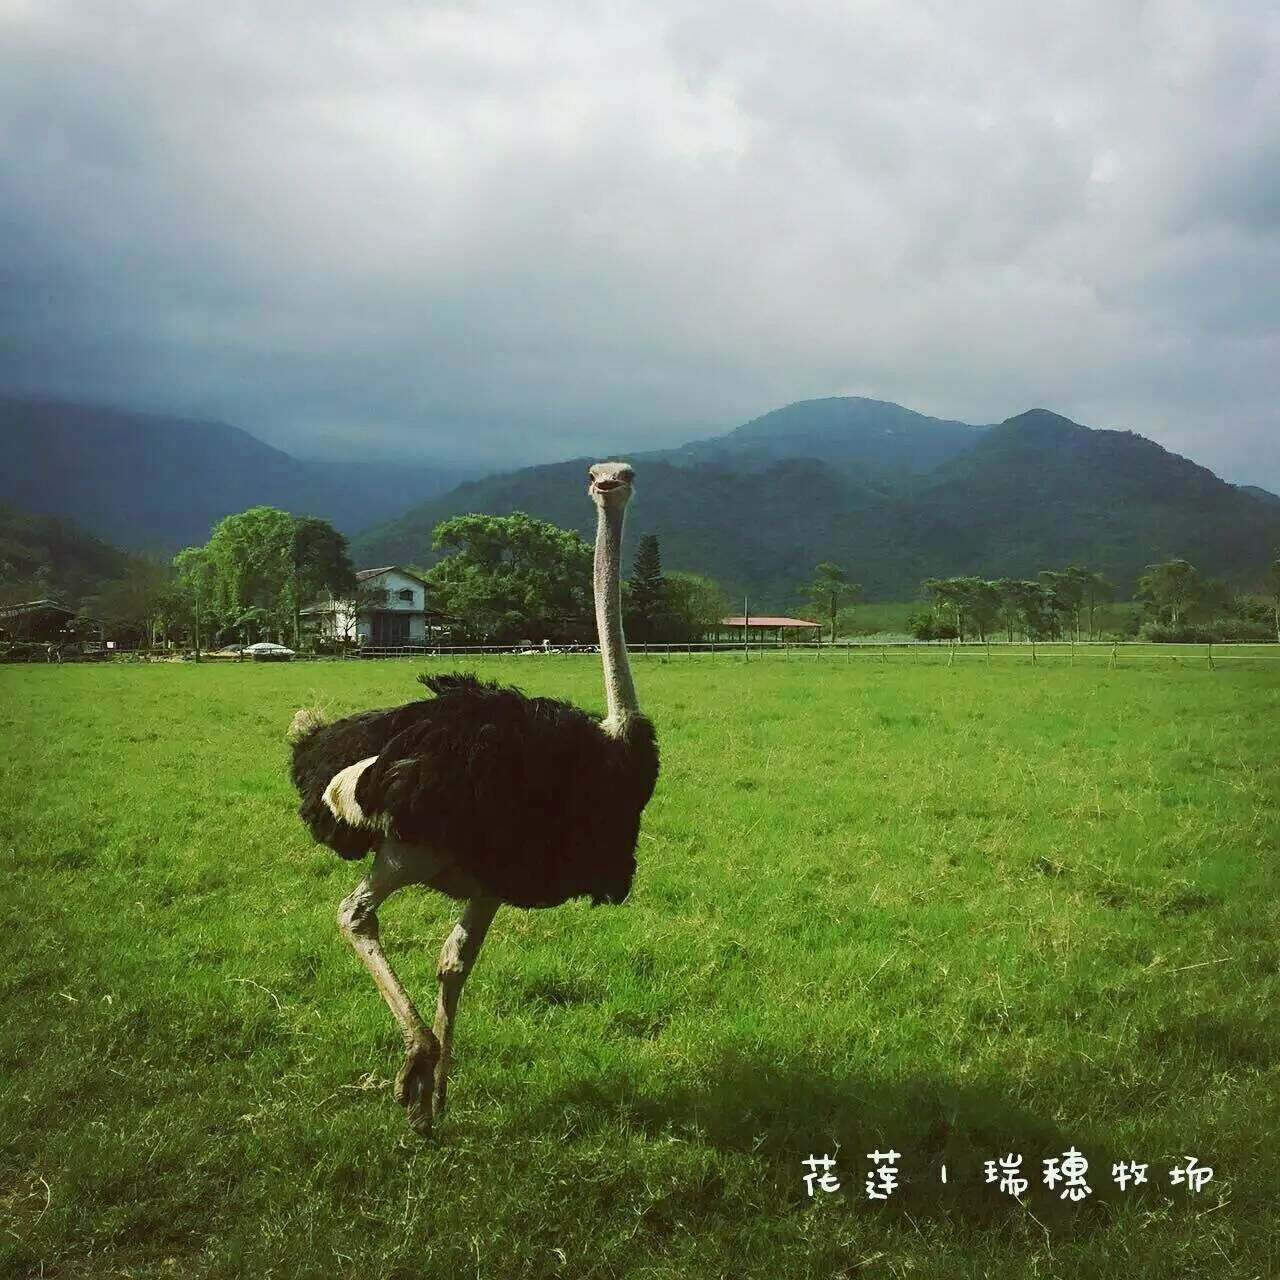 grass, nature, field, animal themes, green color, landscape, outdoors, day, cloud - sky, no people, mountain, one animal, sky, beauty in nature, bird, ostrich, scenics, animals in the wild, tree